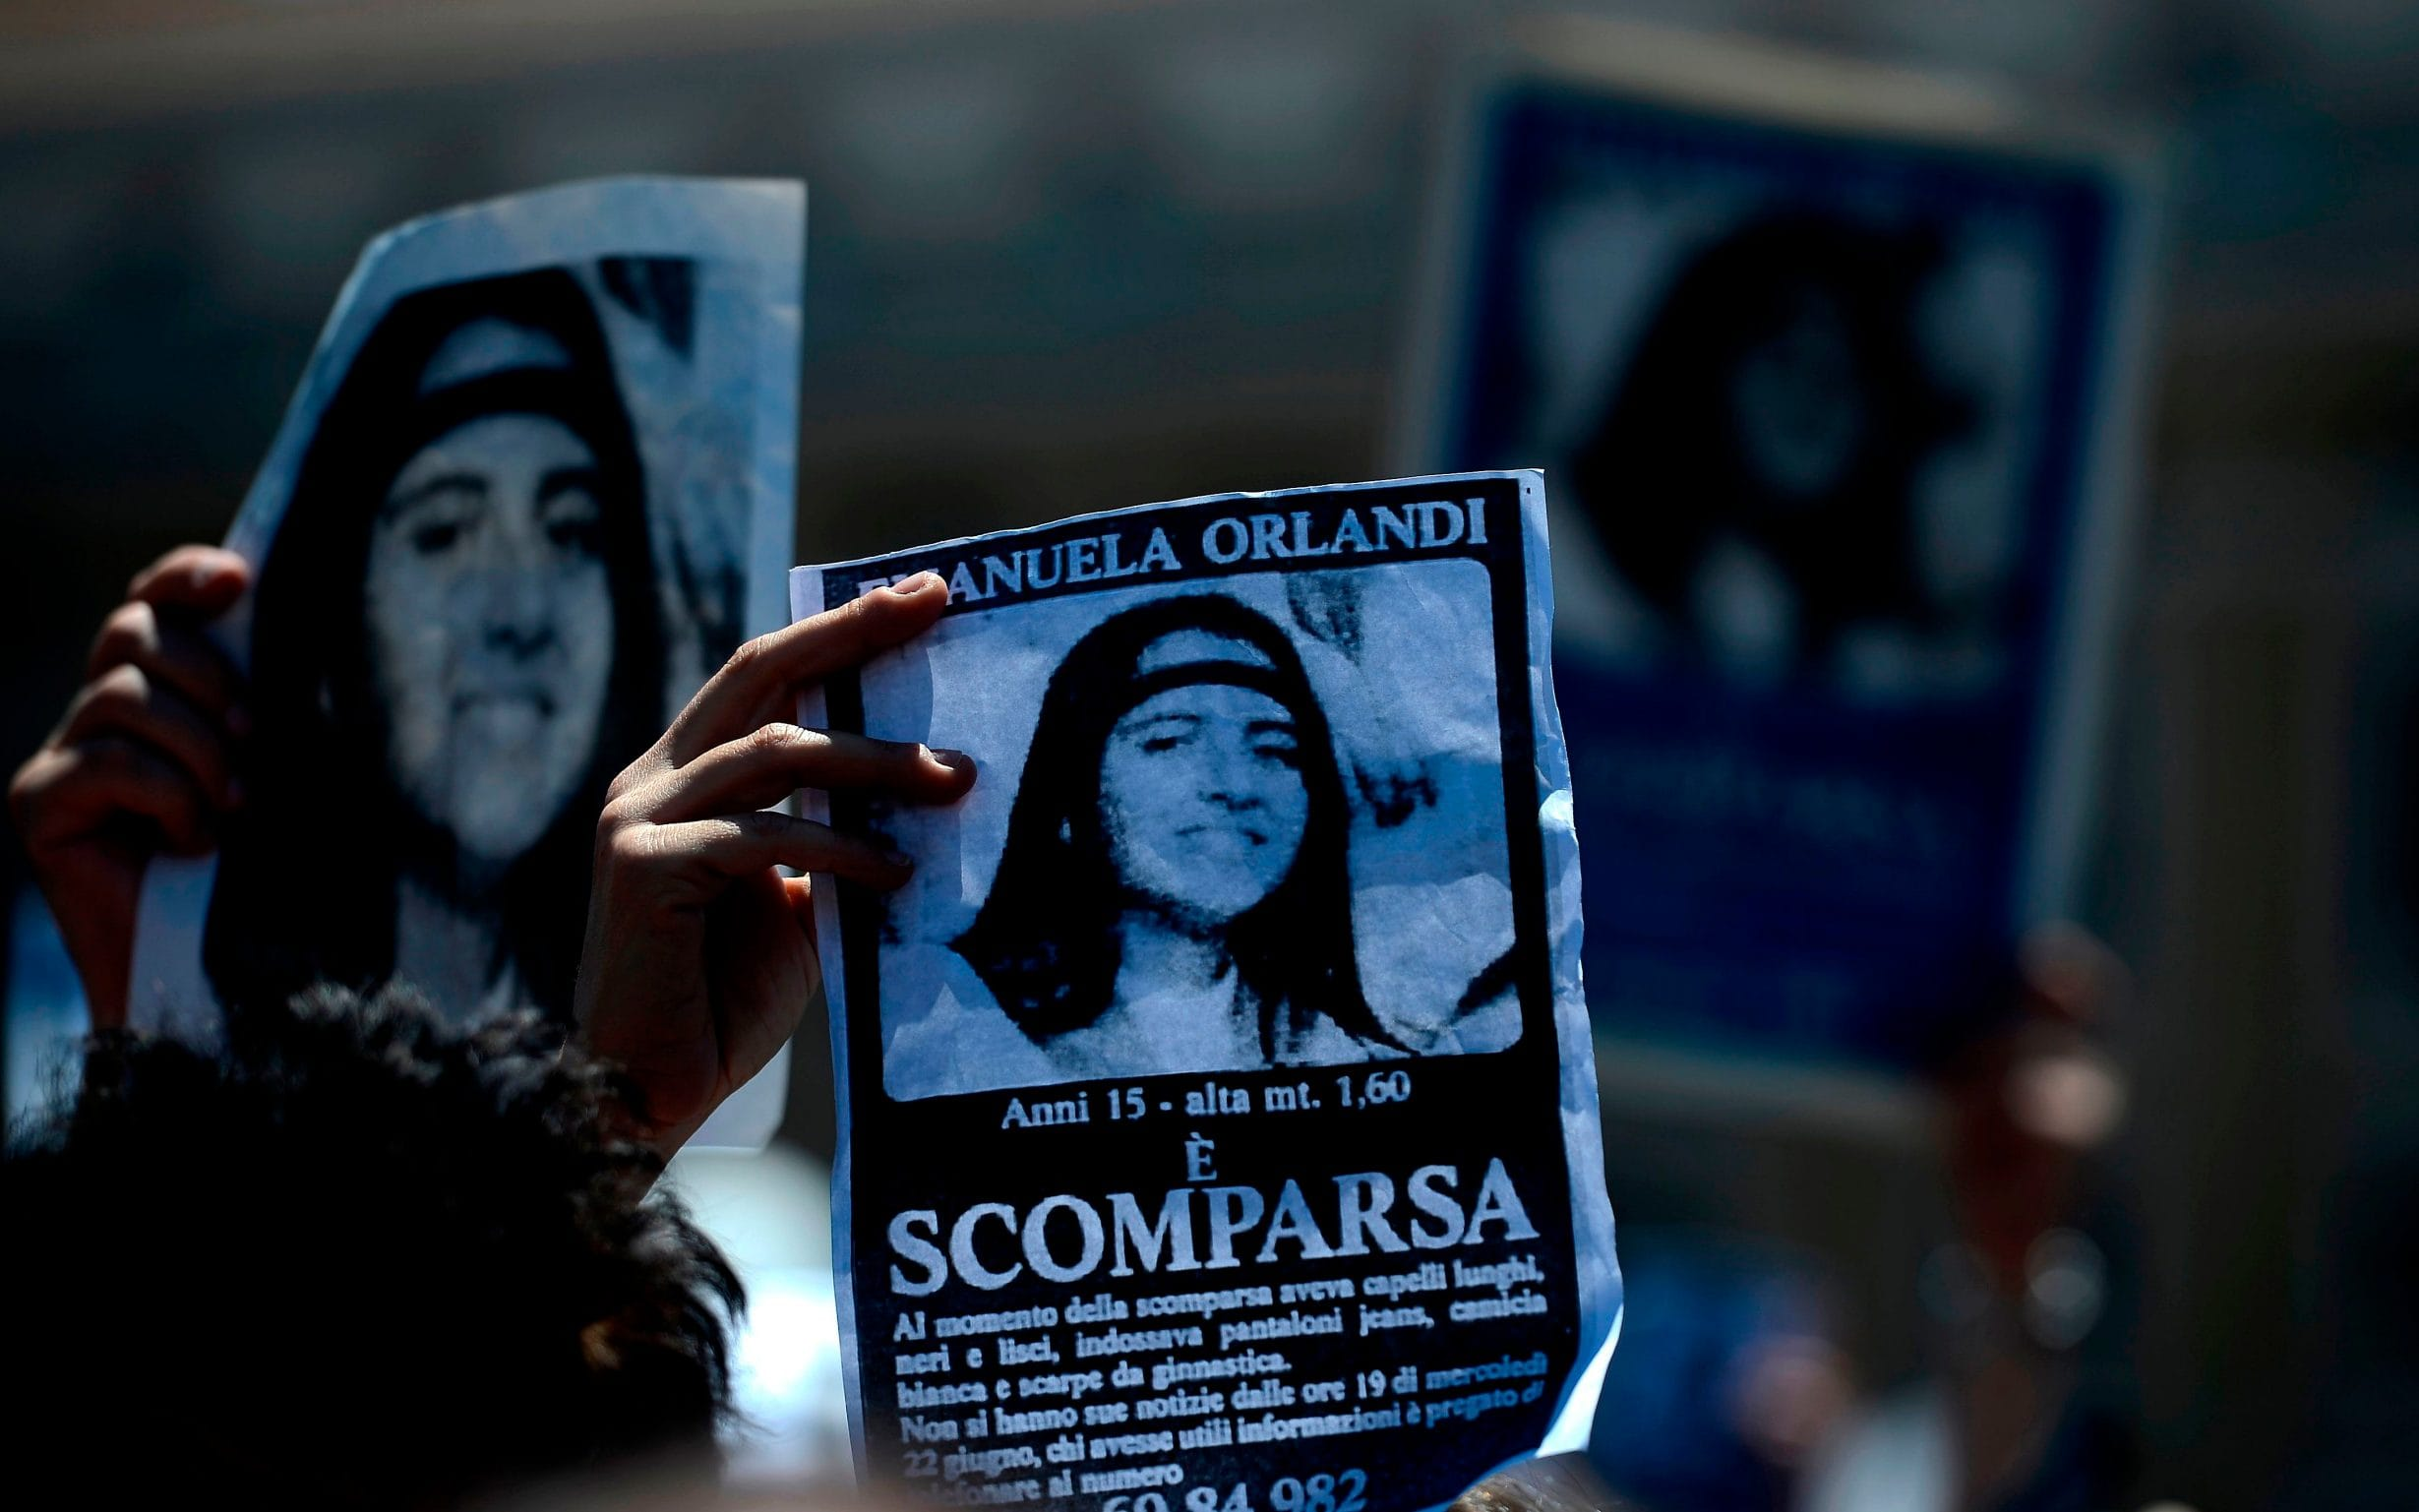 Vatican bones found to be too old in quest to solve mystery of missing teenager EmanuelaOrlandi